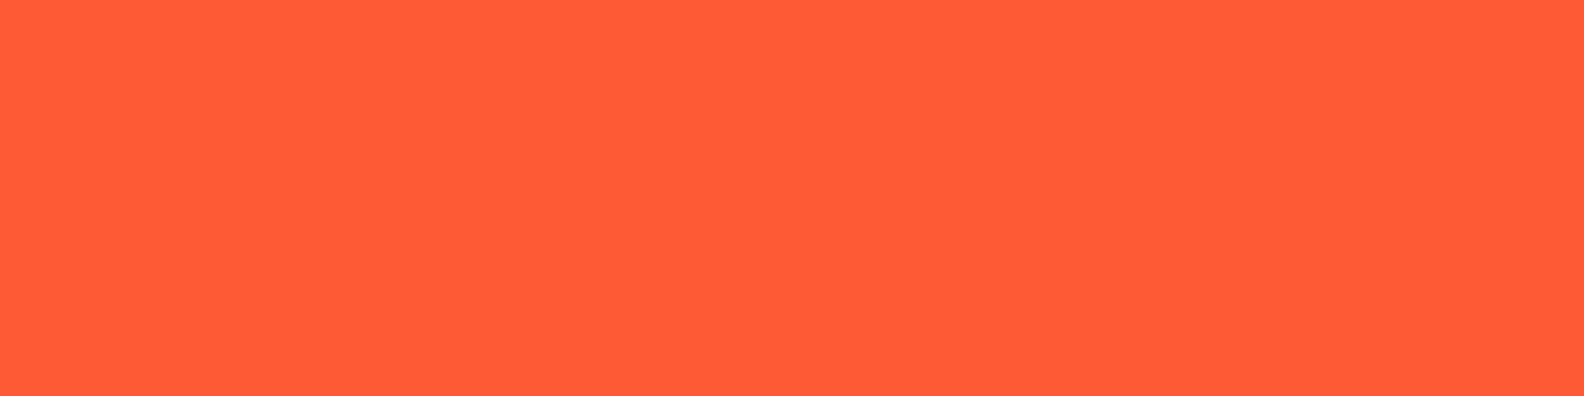 1584x396 Portland Orange Solid Color Background